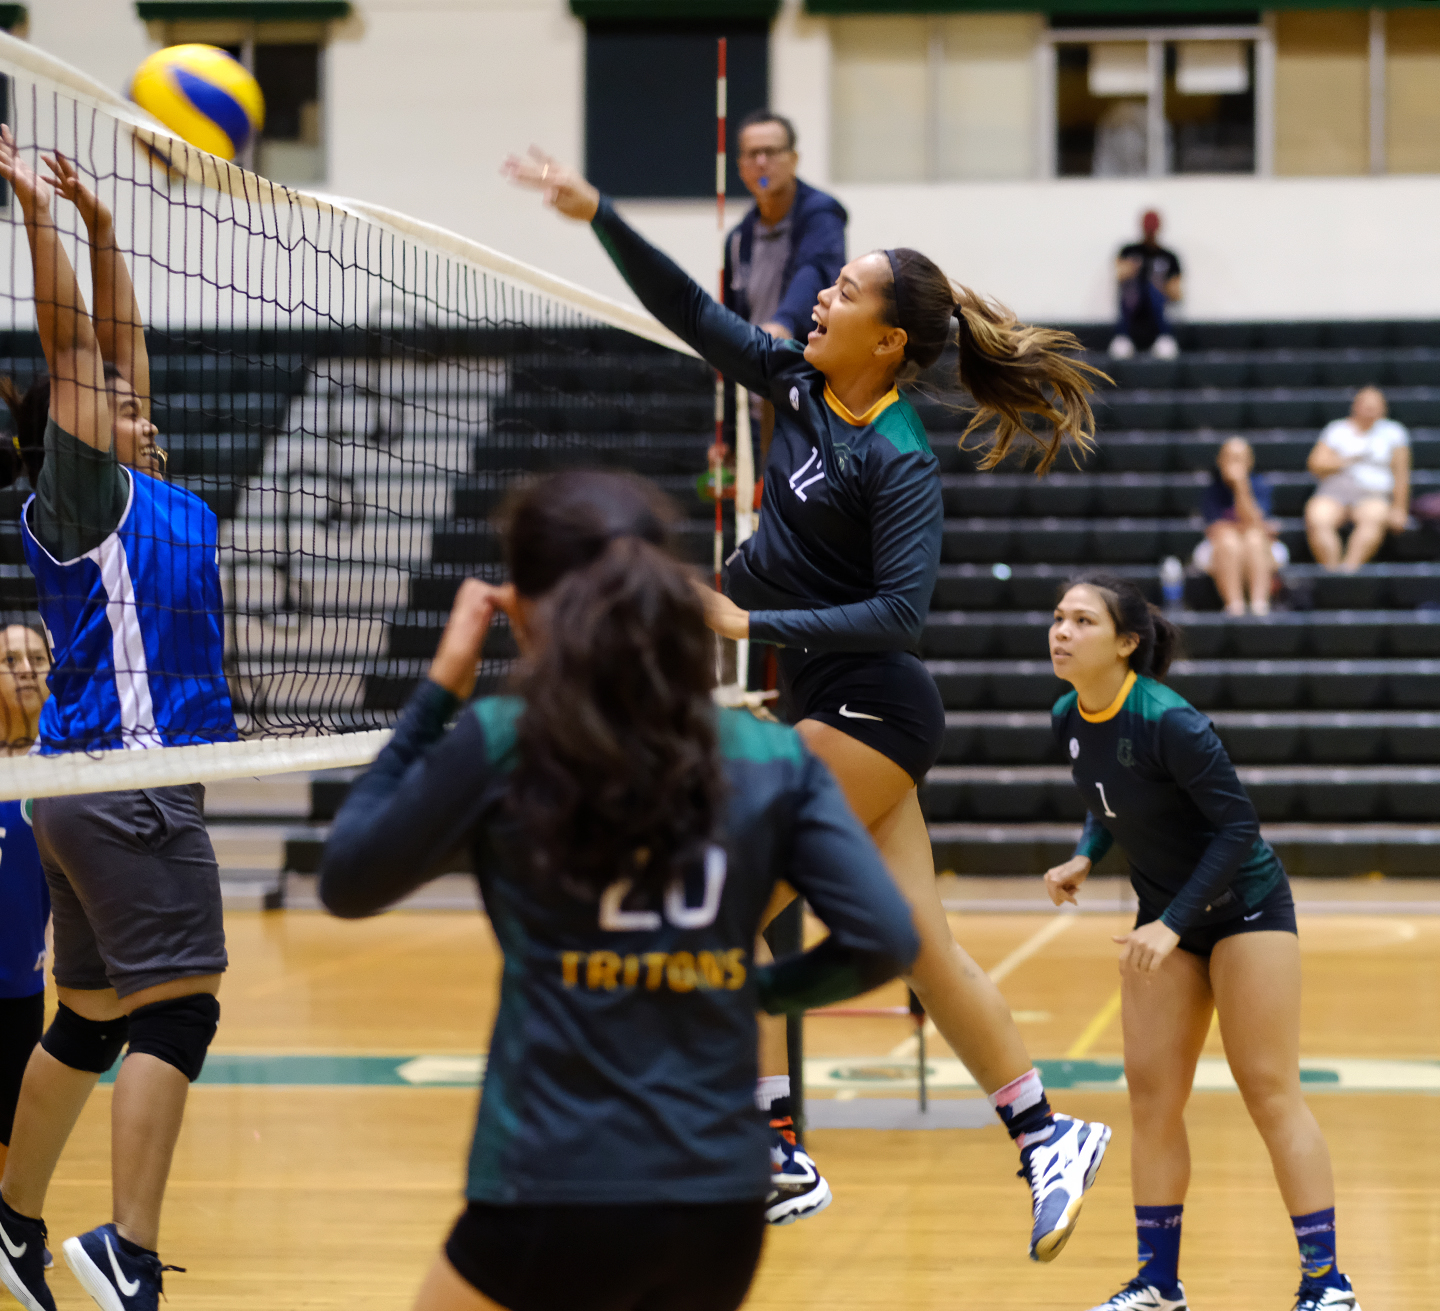 The University of Guam Varsity Volleyball Team made short work of the UOG Recreation Department Volleyball Club Team, the Tridents, on Monday night at the UOG Calvo Field House in a Guam Women's College Volleyball League match, as the Tritons won 3-0, 24-14, 25-12, 25-13.